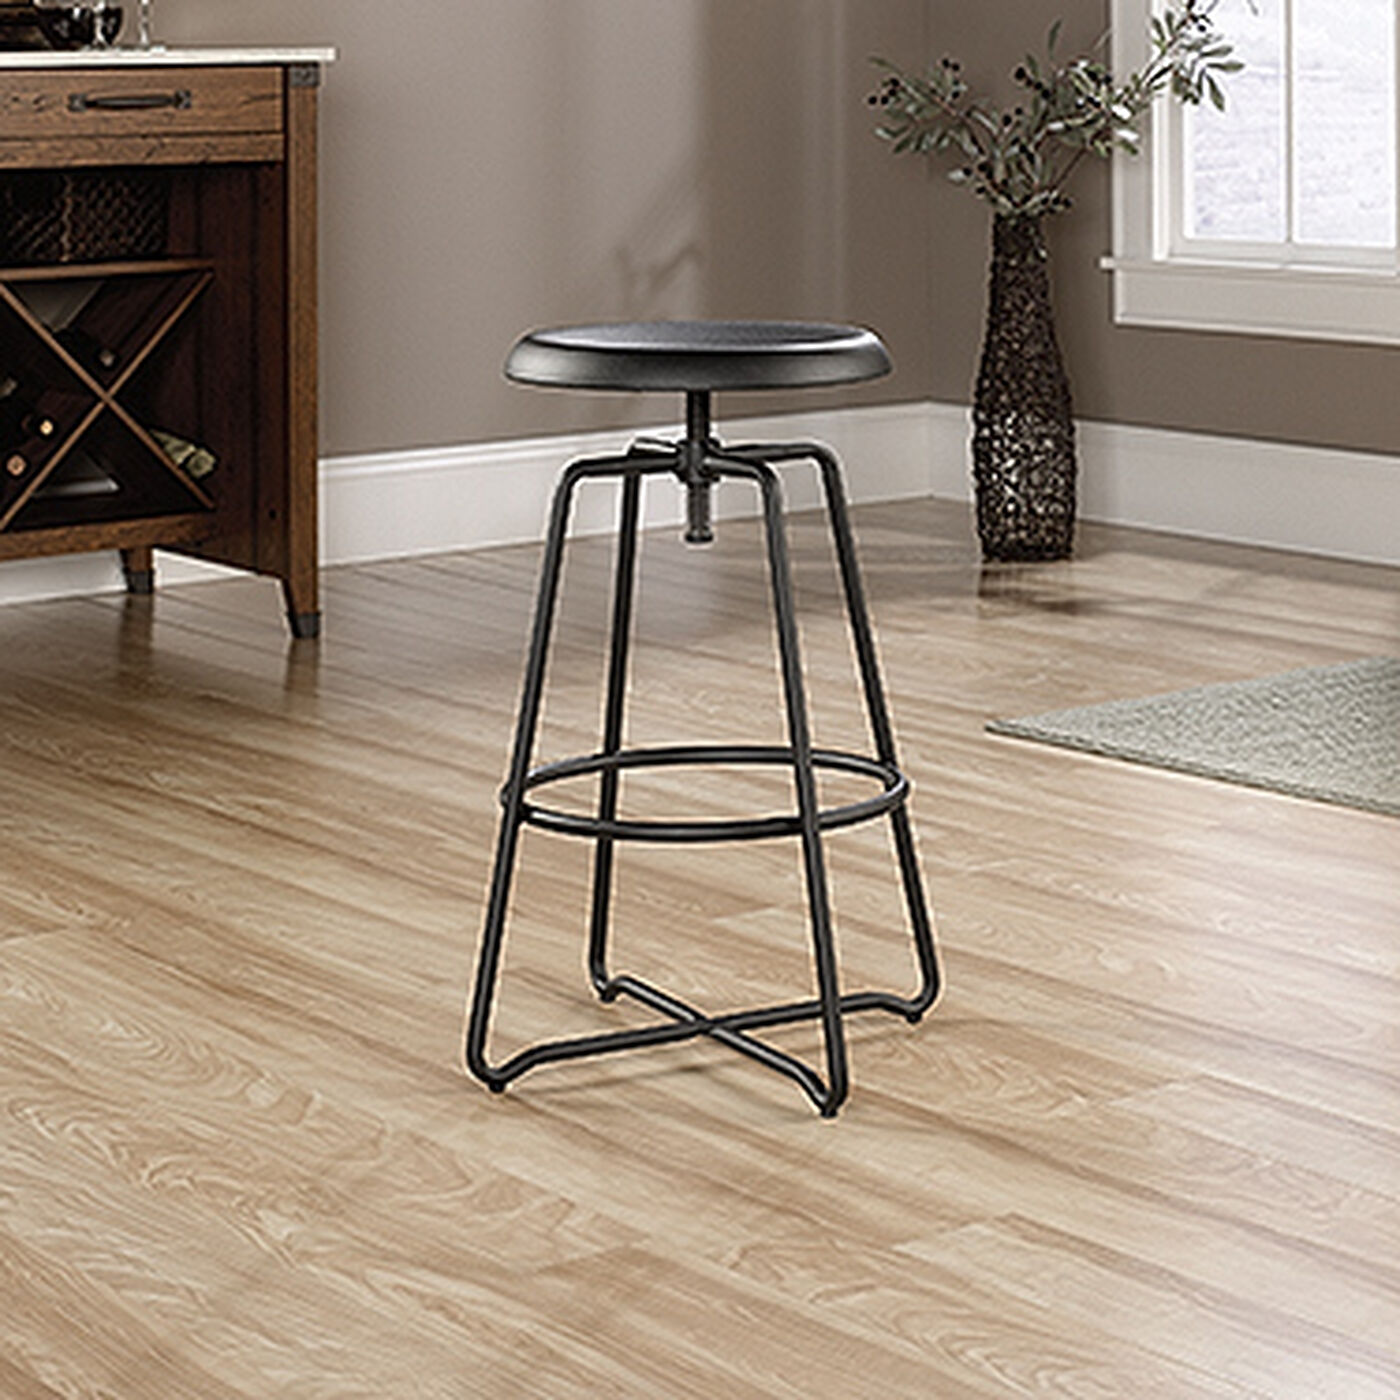 Traditional 24 Quot Counter Height Stool In Black Mathis